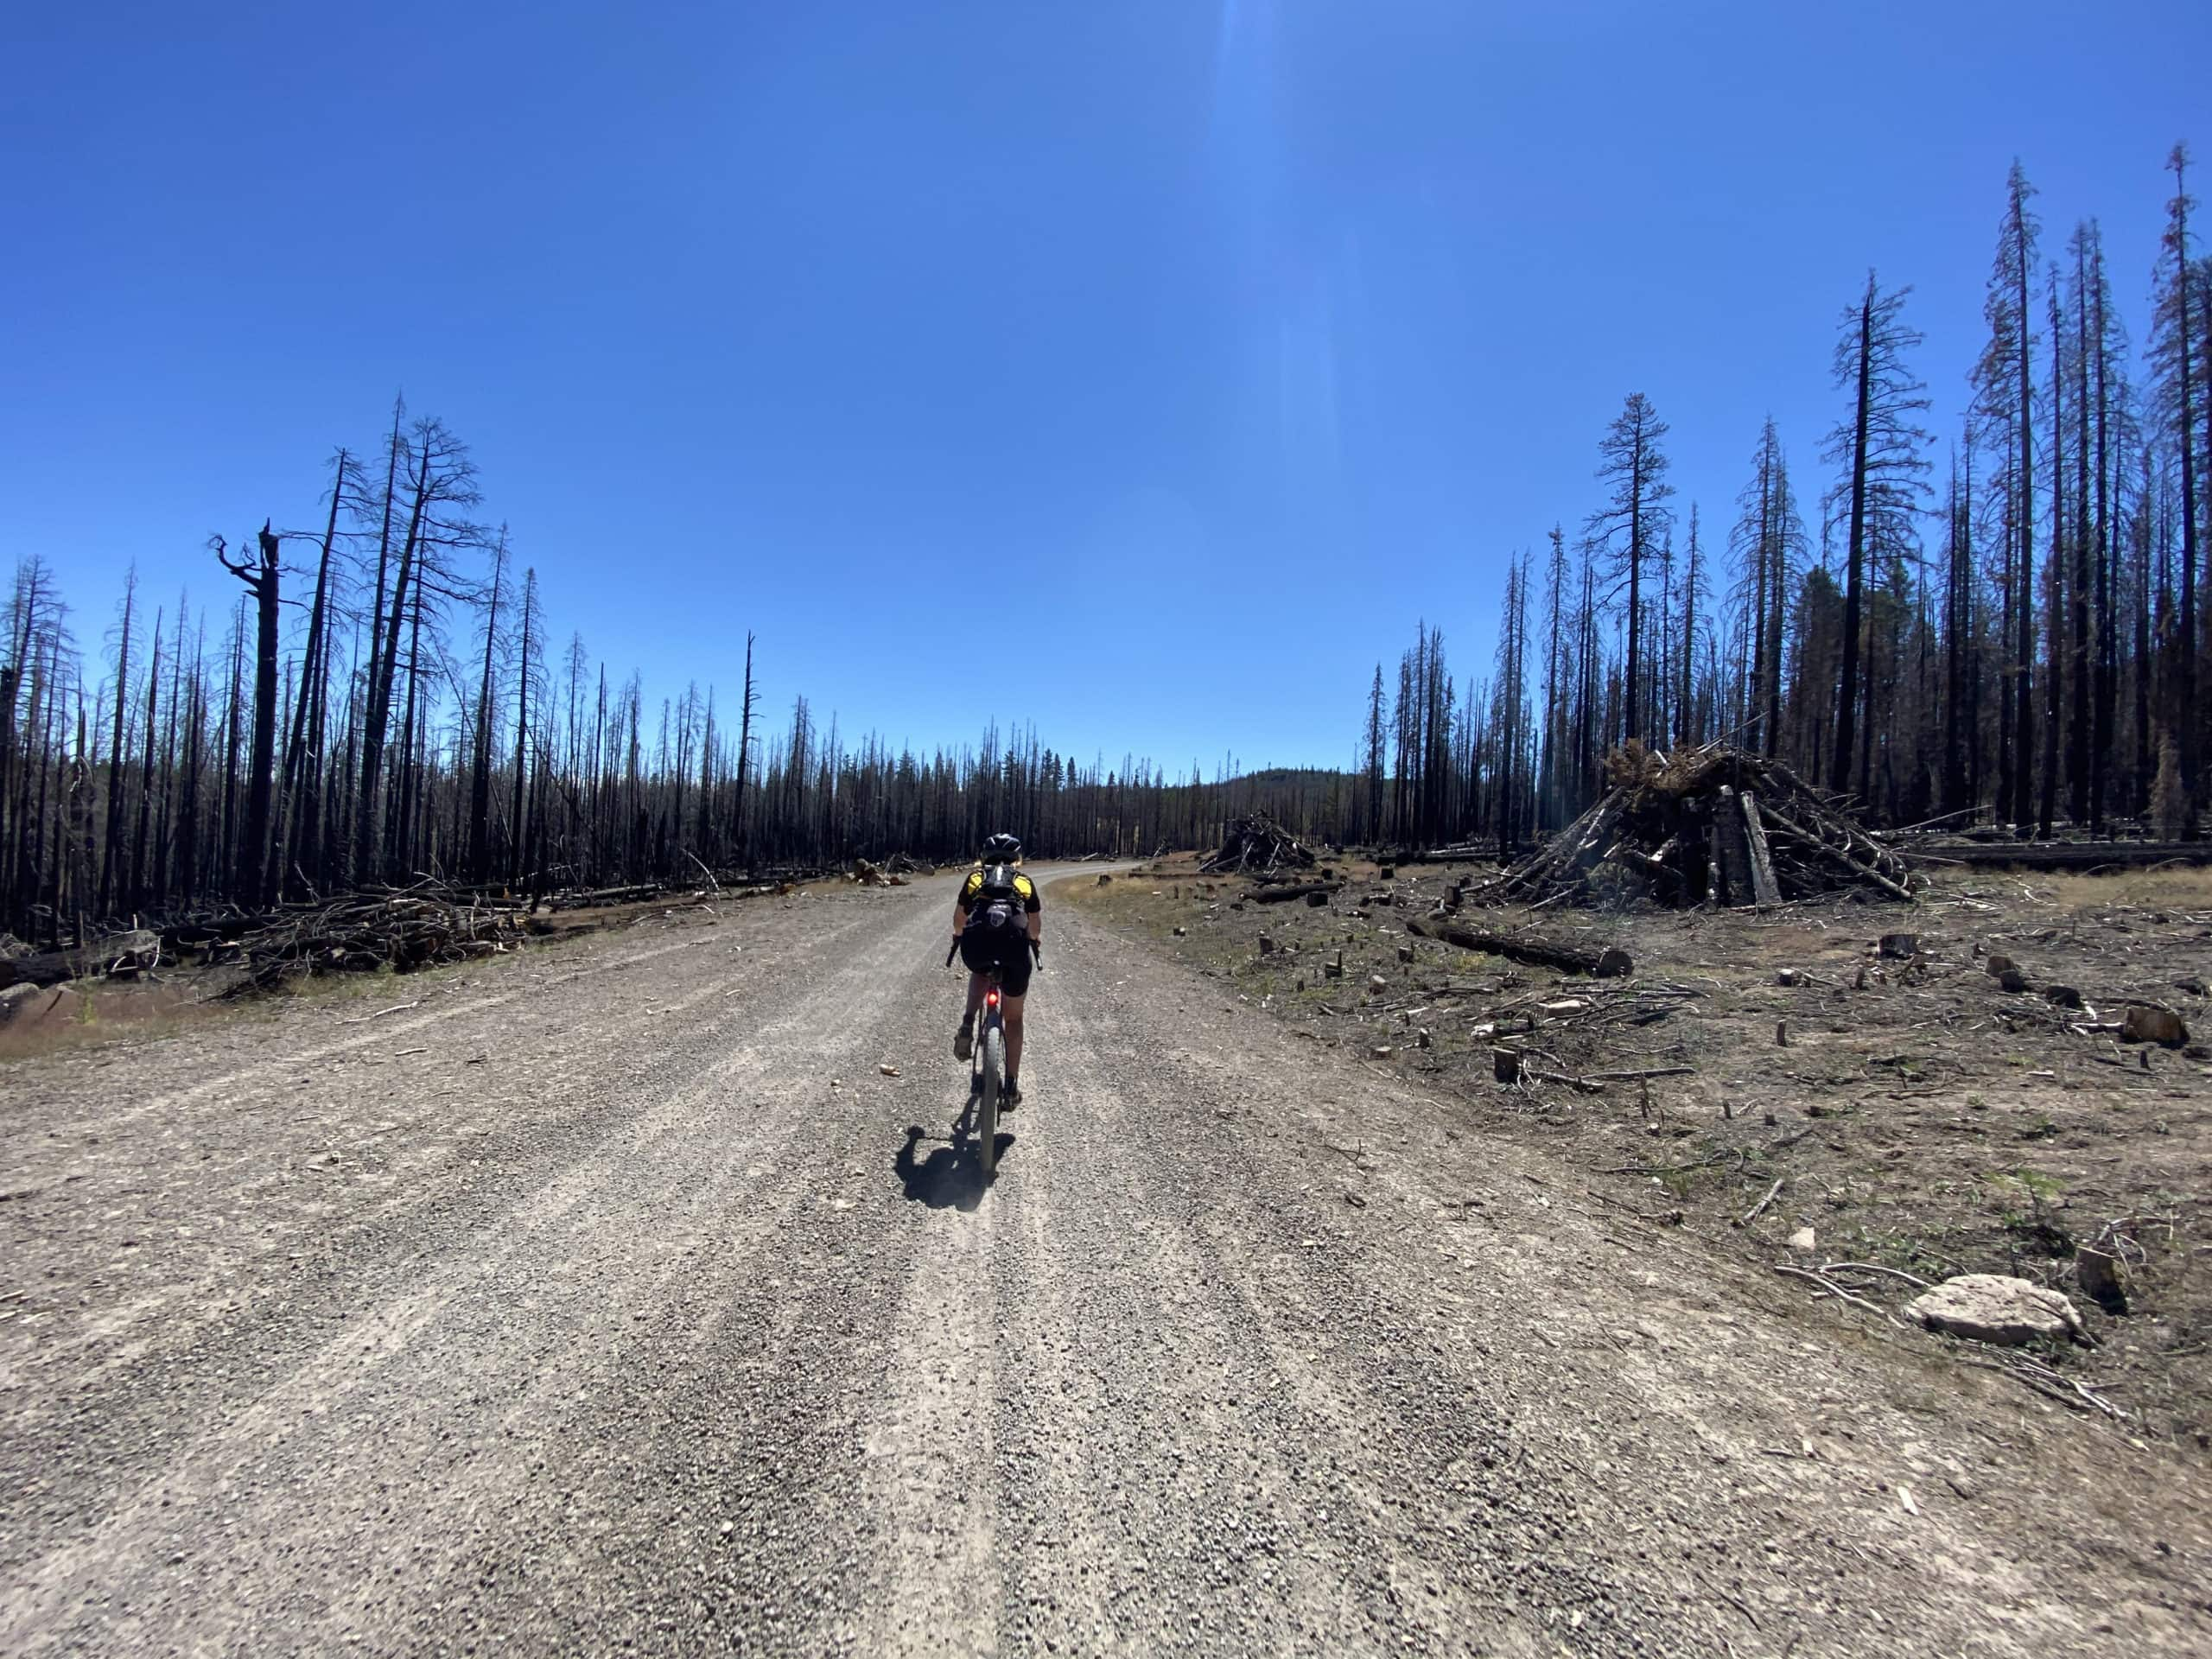 Gravel cyclist on forest service road through the Watson Creek burn in the Fremont National Forest.